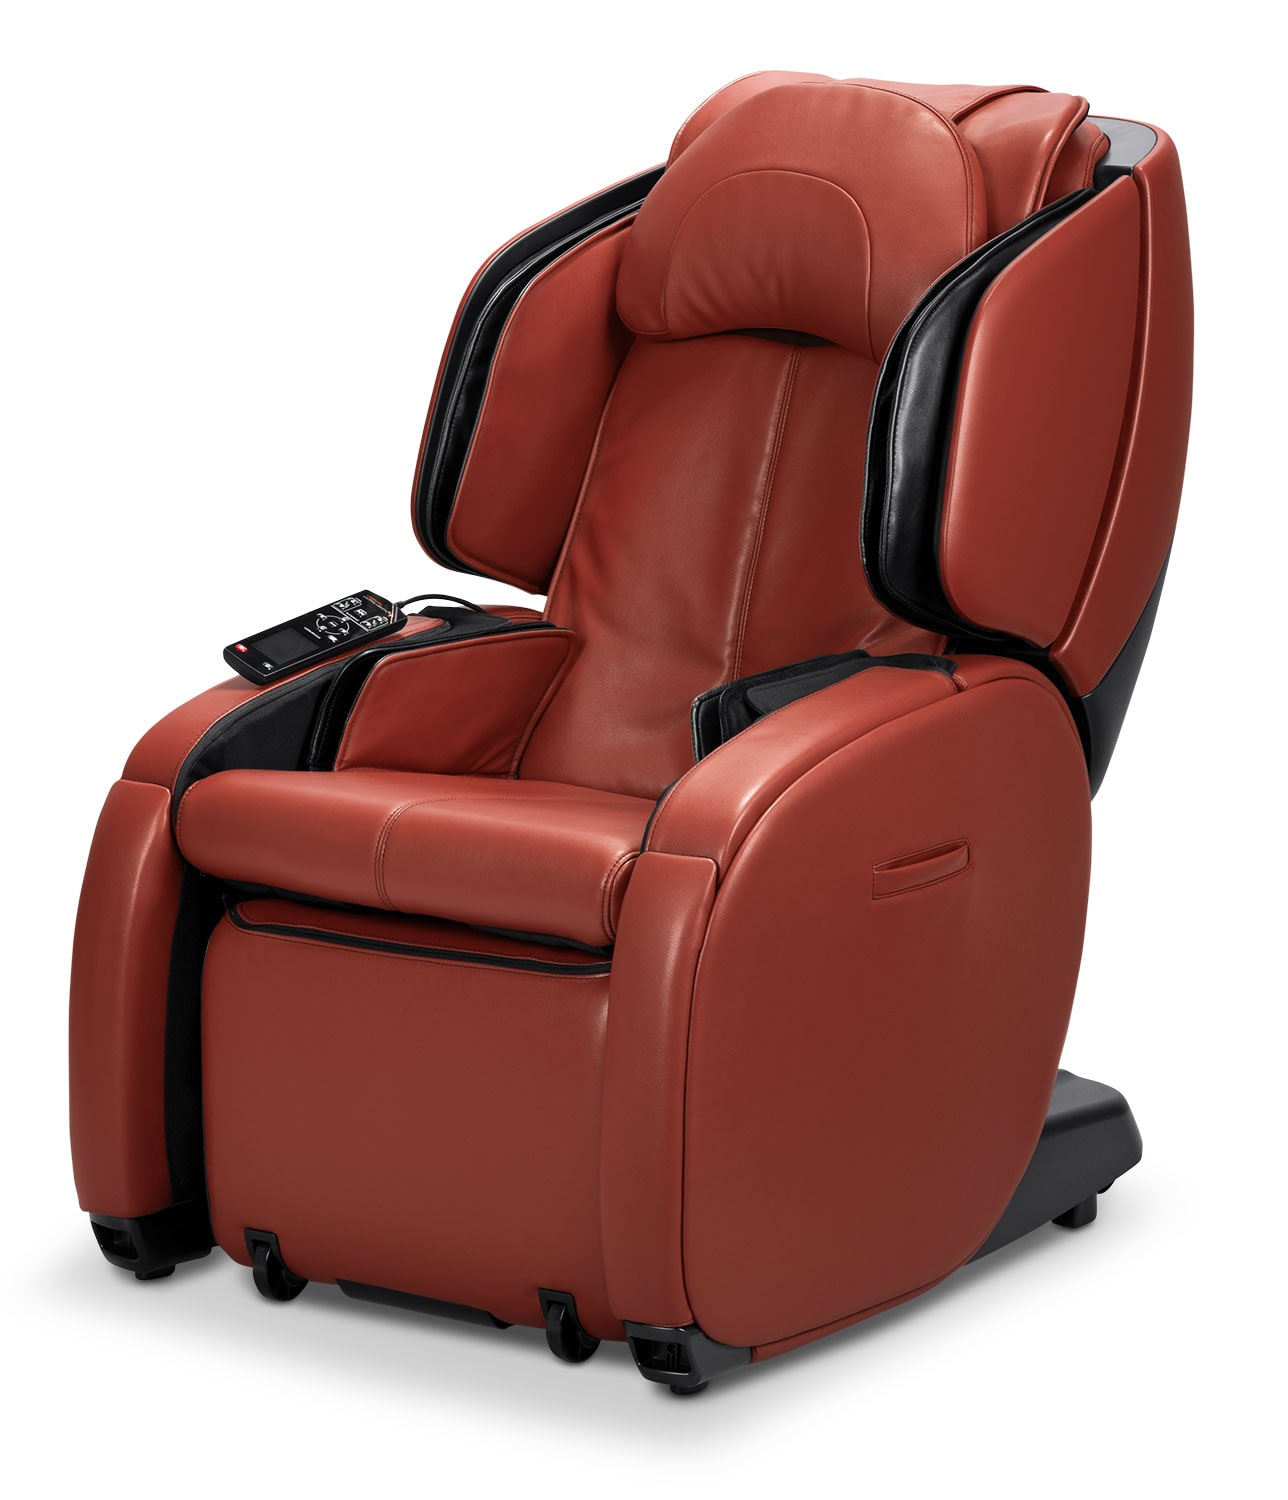 Human Touch® AcuTouch® 6.0 Auto Immersion Massage Chair – Red